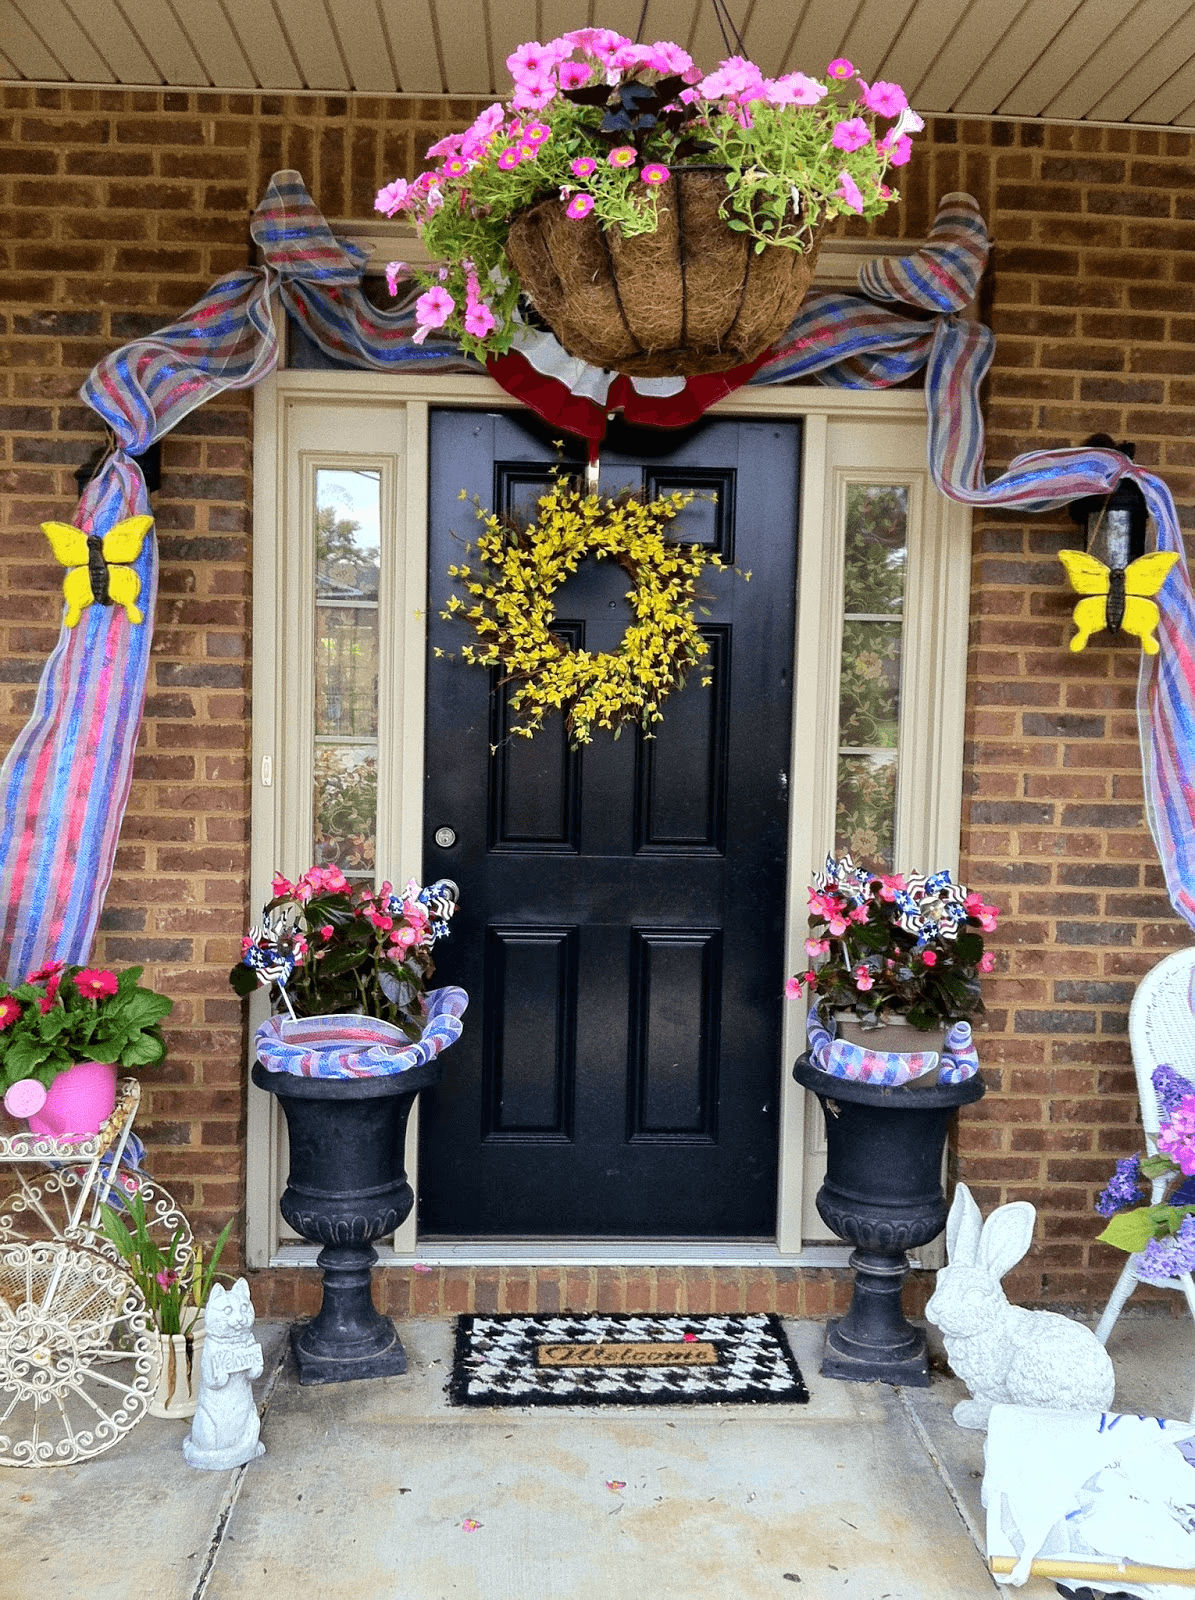 How to decorate small front porch for summer